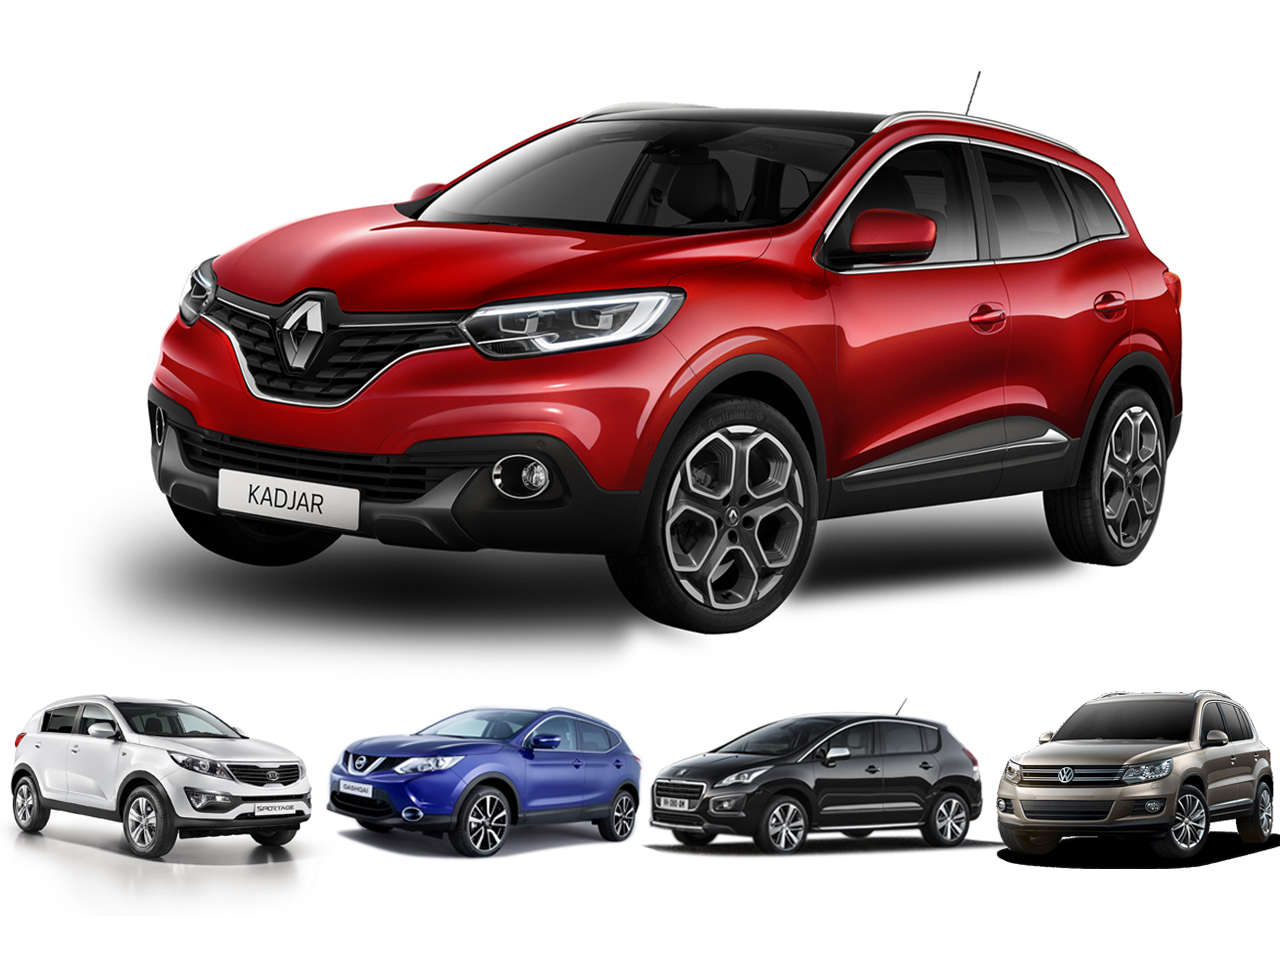 le renault kadjar face ses rivaux photo 5 l 39 argus. Black Bedroom Furniture Sets. Home Design Ideas